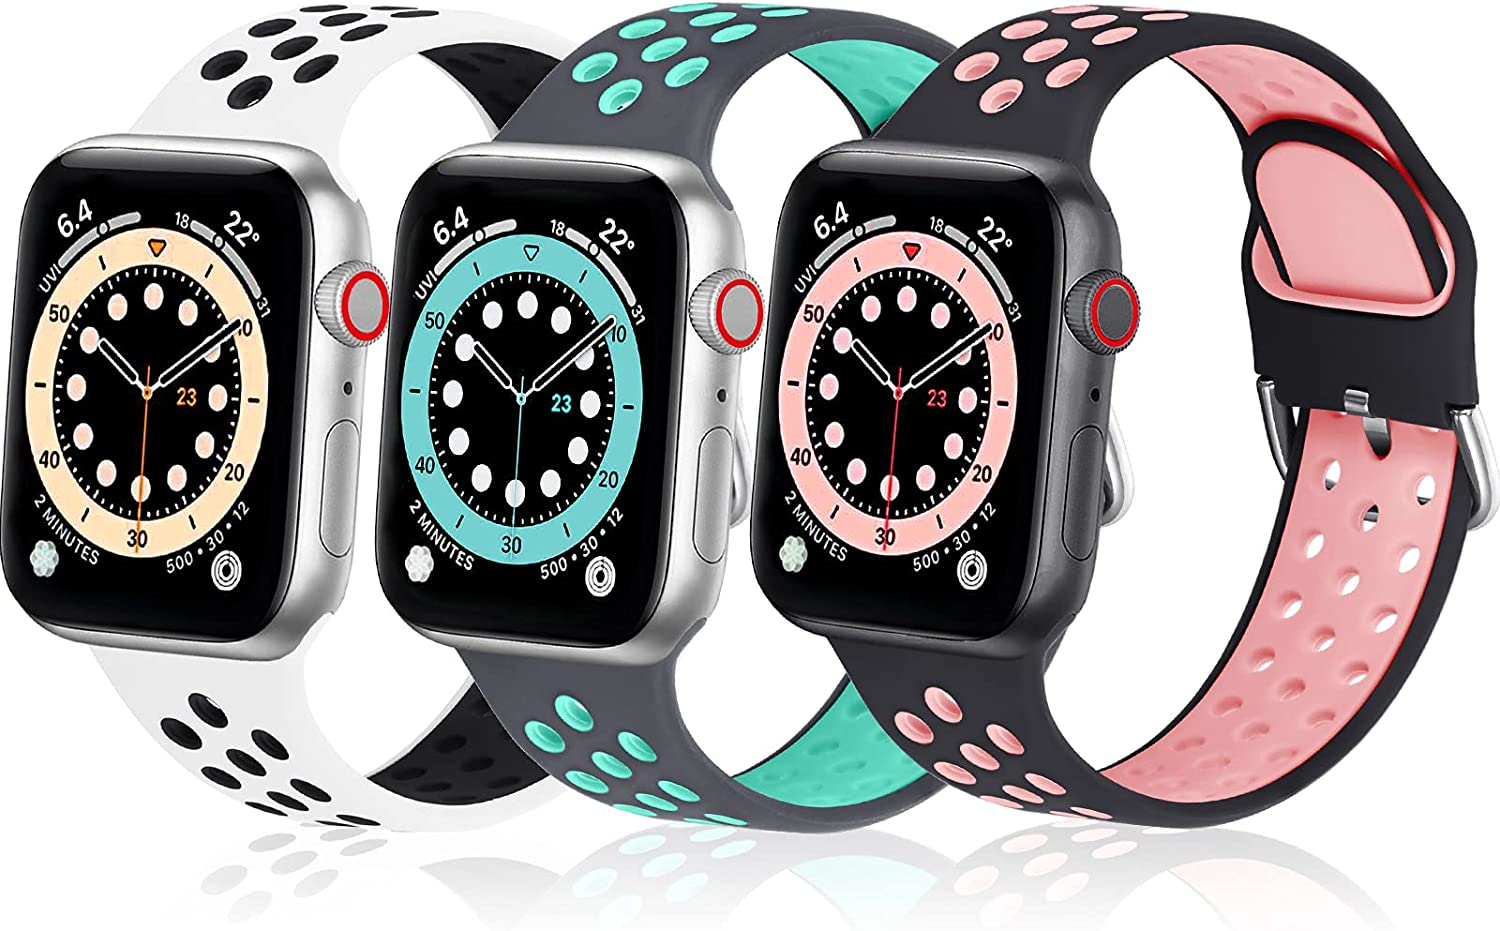 OMIU Sports iWatch Bands Compatible for Apple Watch Band 38mm 40mm 41mm 42mm 44mm 45mm for Men Women, 3 Packs Breathable Silicone Wristbands Replacement Strap for iWatch Series 7/6/5/4/3/2/1/SE